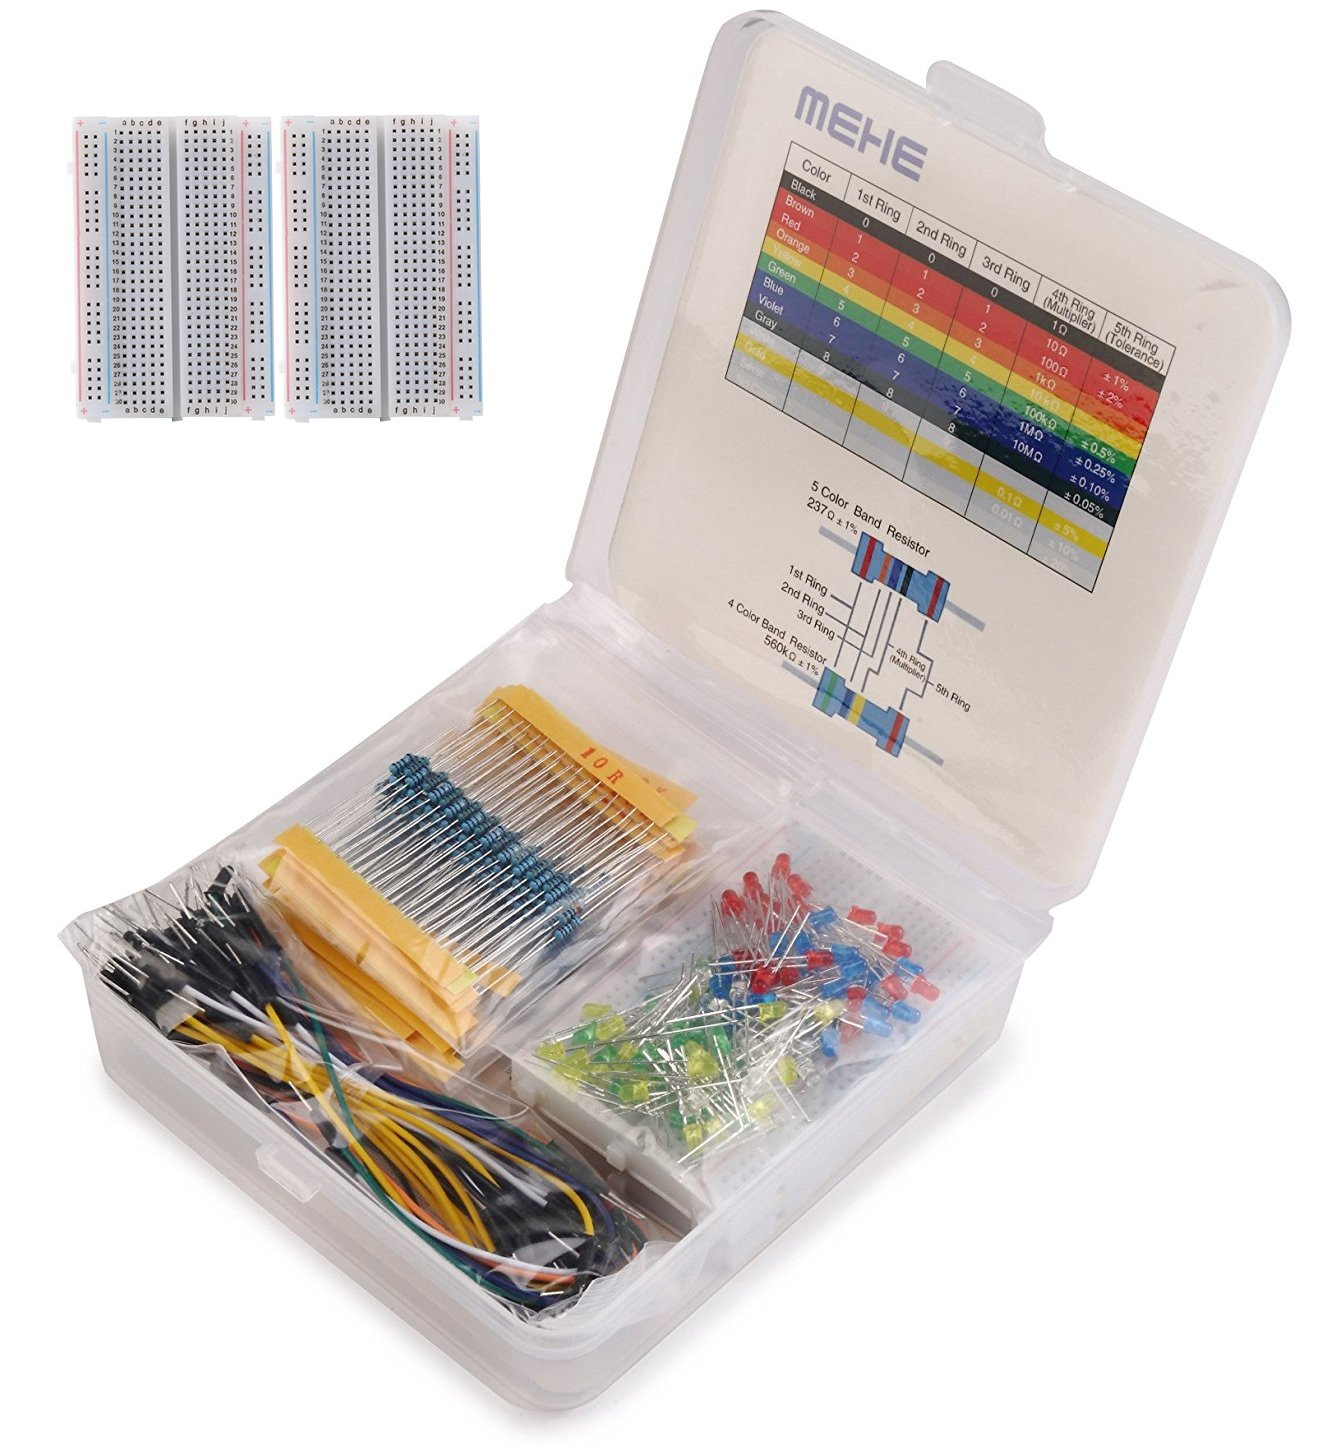 MEHE Basic Starter Kit, Values Resistor Kit Assortment 4 in 1 Electronics Components,Breadboard,Color LED,Jumper Wires for Arduino,Raspberry Pi